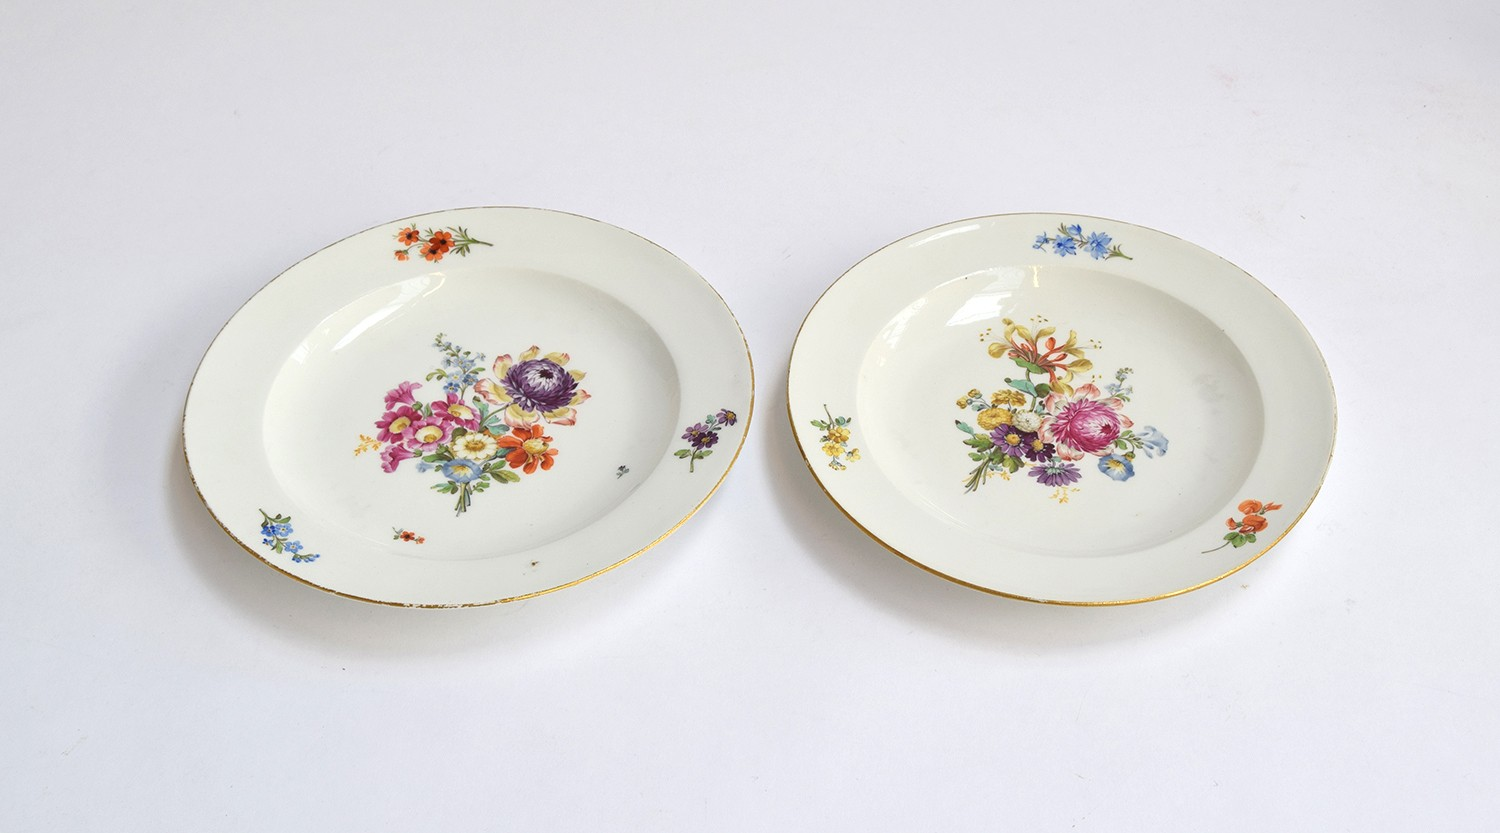 Four late 18th century Meissen hand painted floral plates, blue crossed sword marks to base, rim - Image 2 of 2